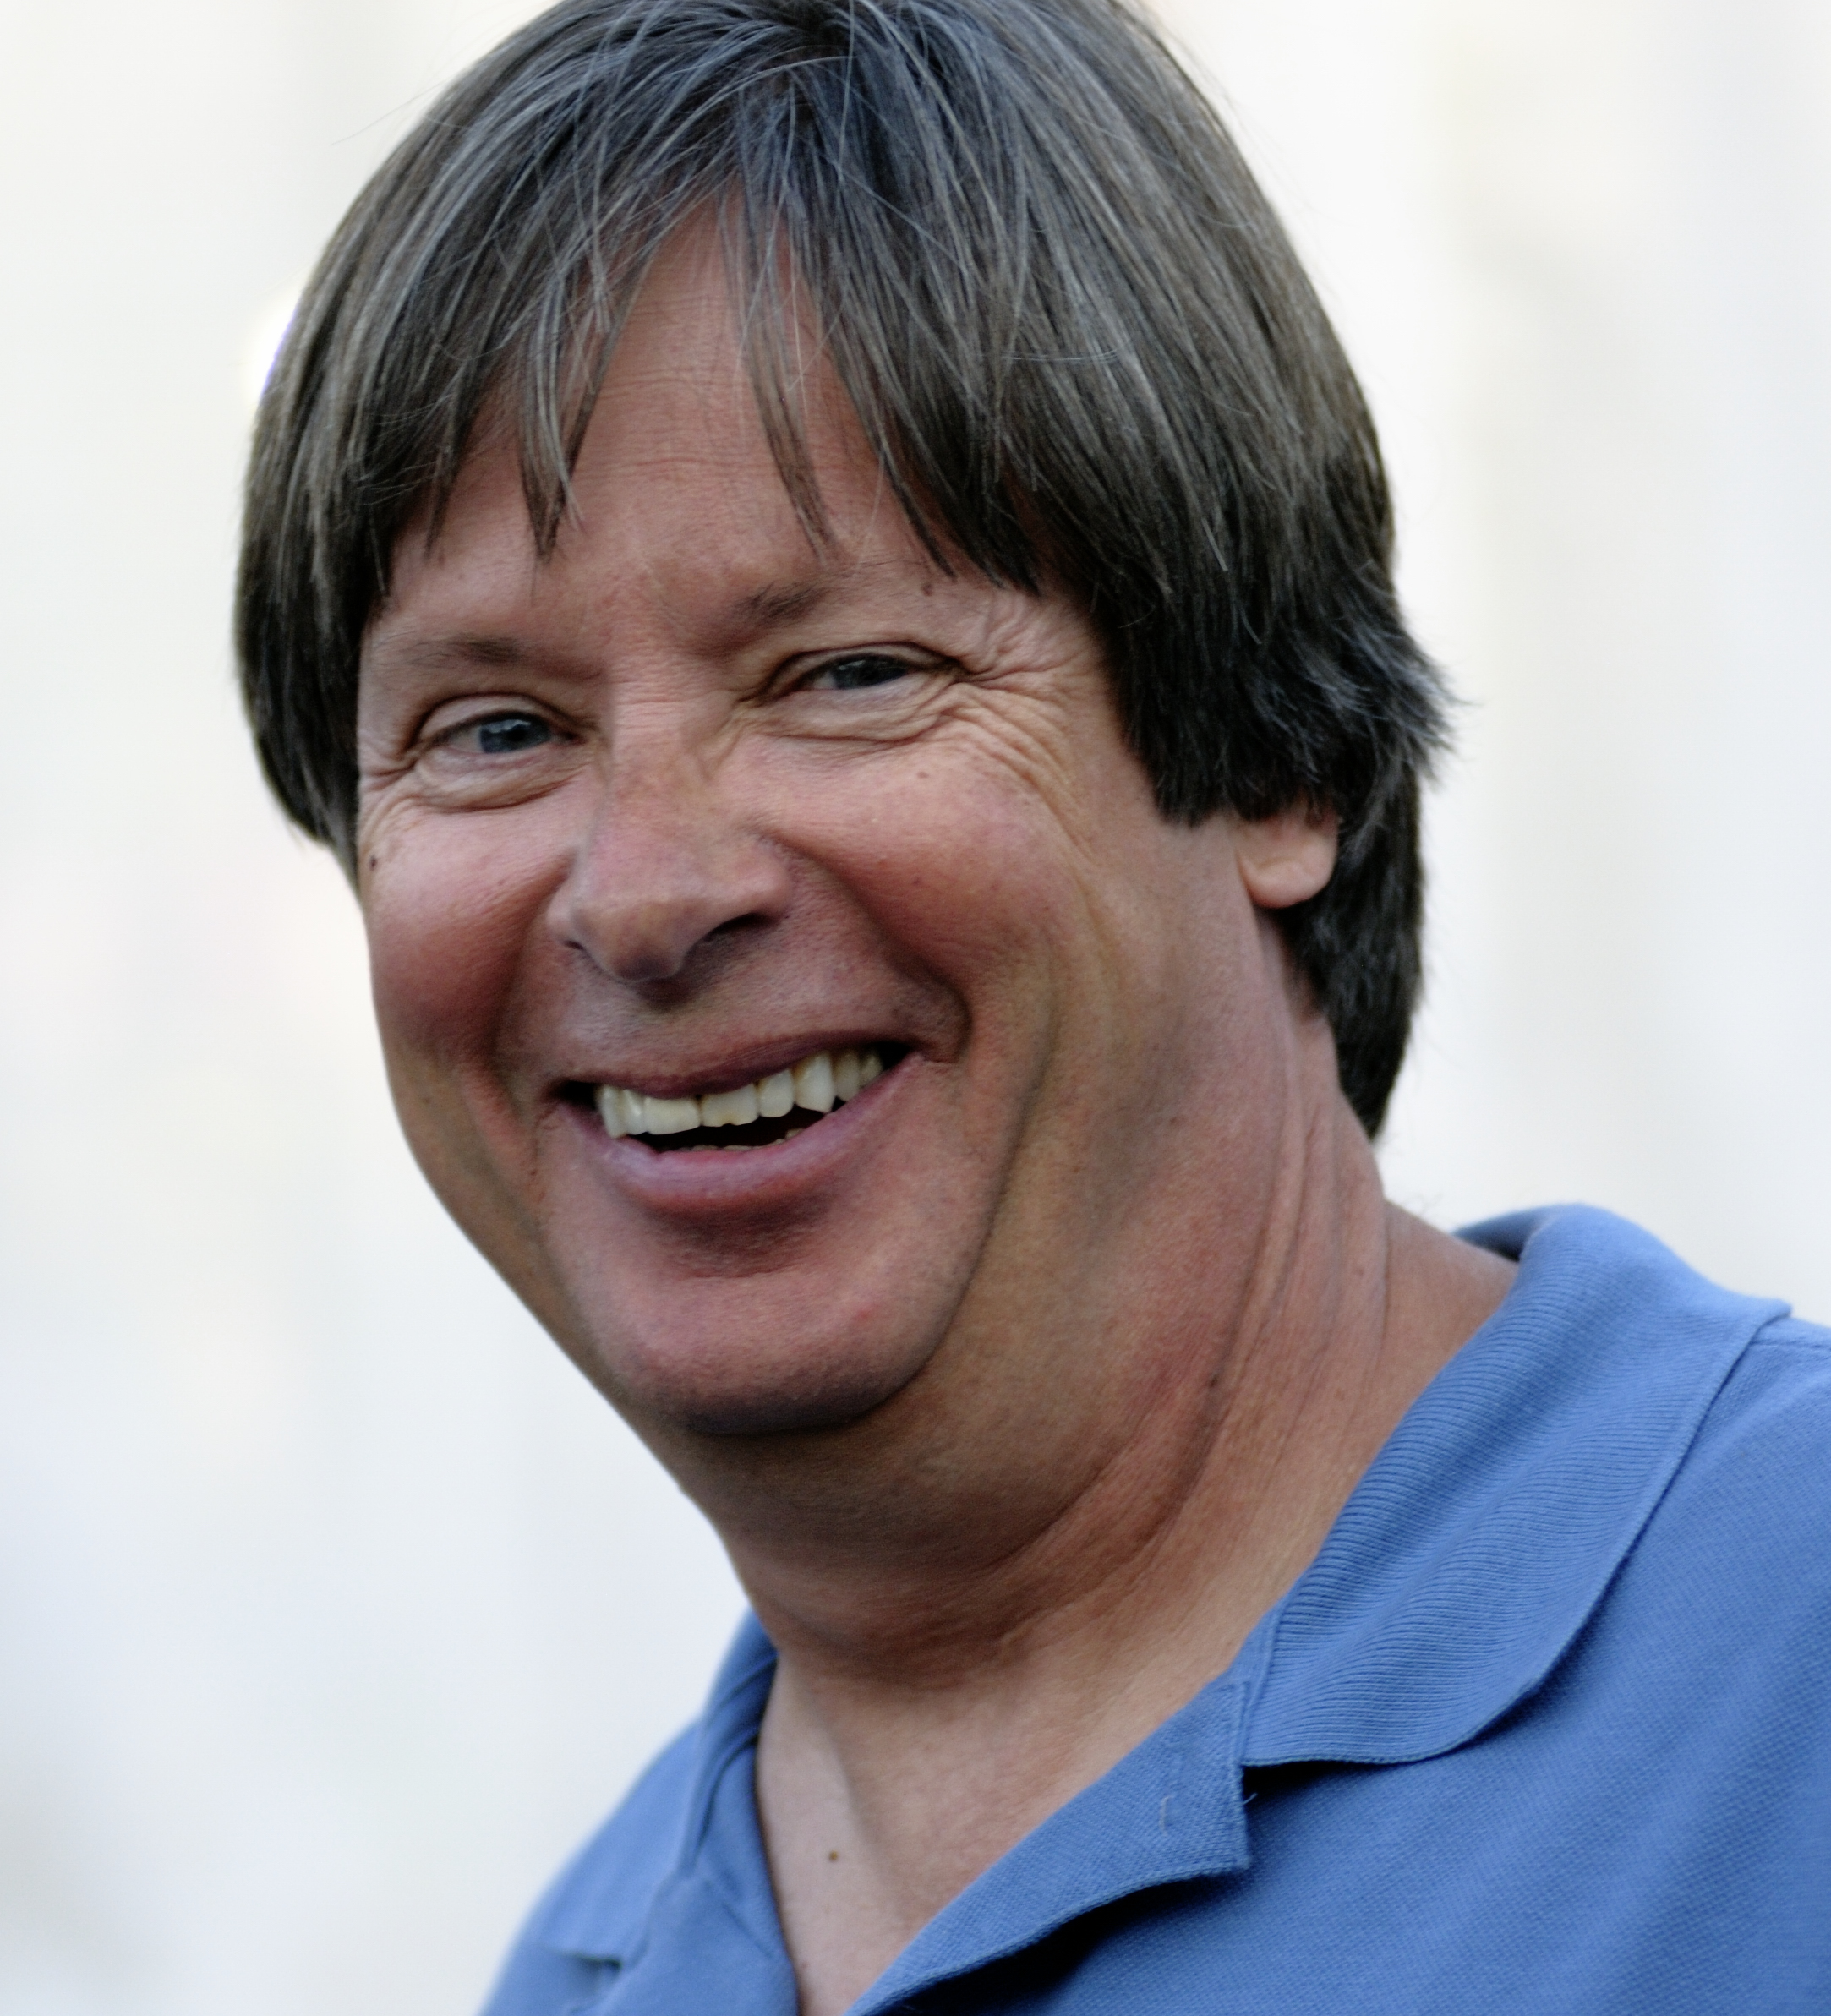 Dave Barry photo #98691, Dave Barry image